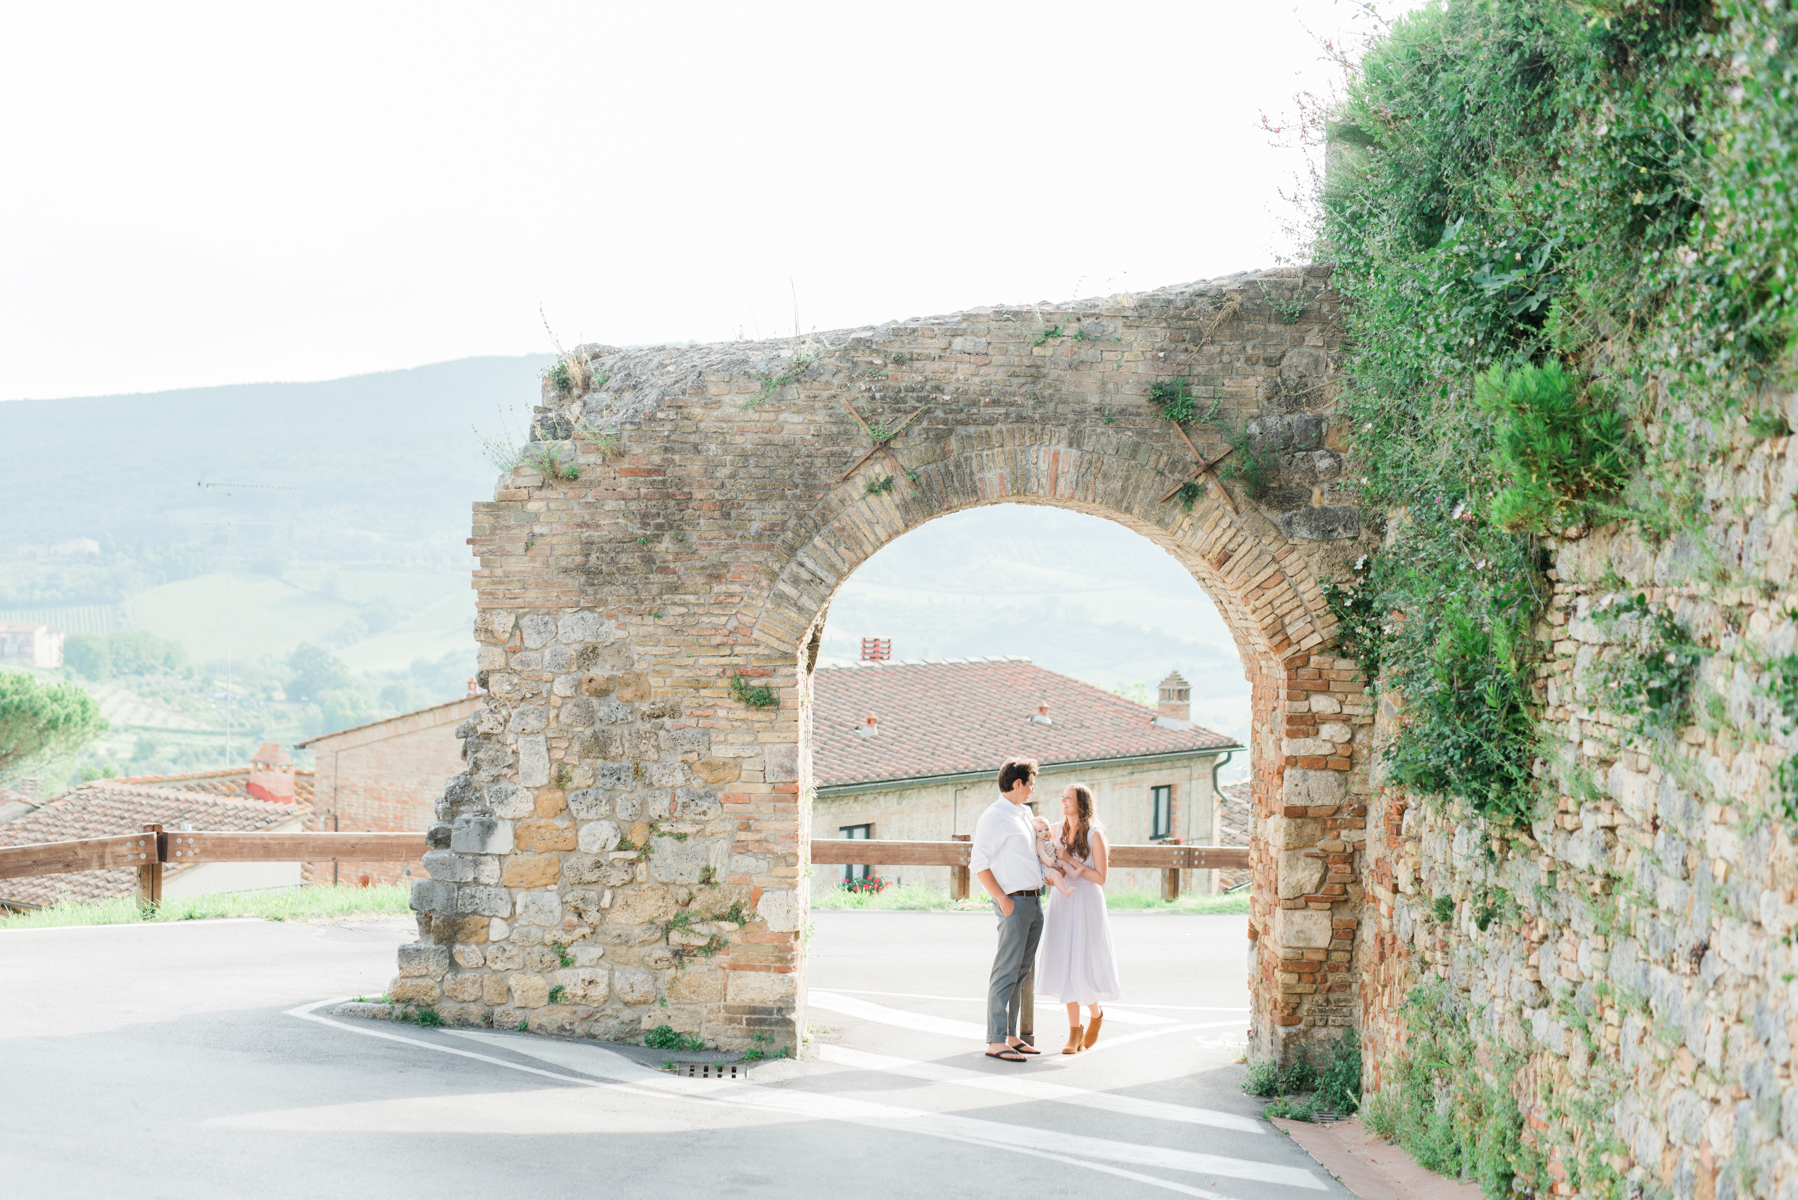 AKP_San_Gimignano_Tuscany_family_shoot_wedding_engagement_photographer-6.jpg